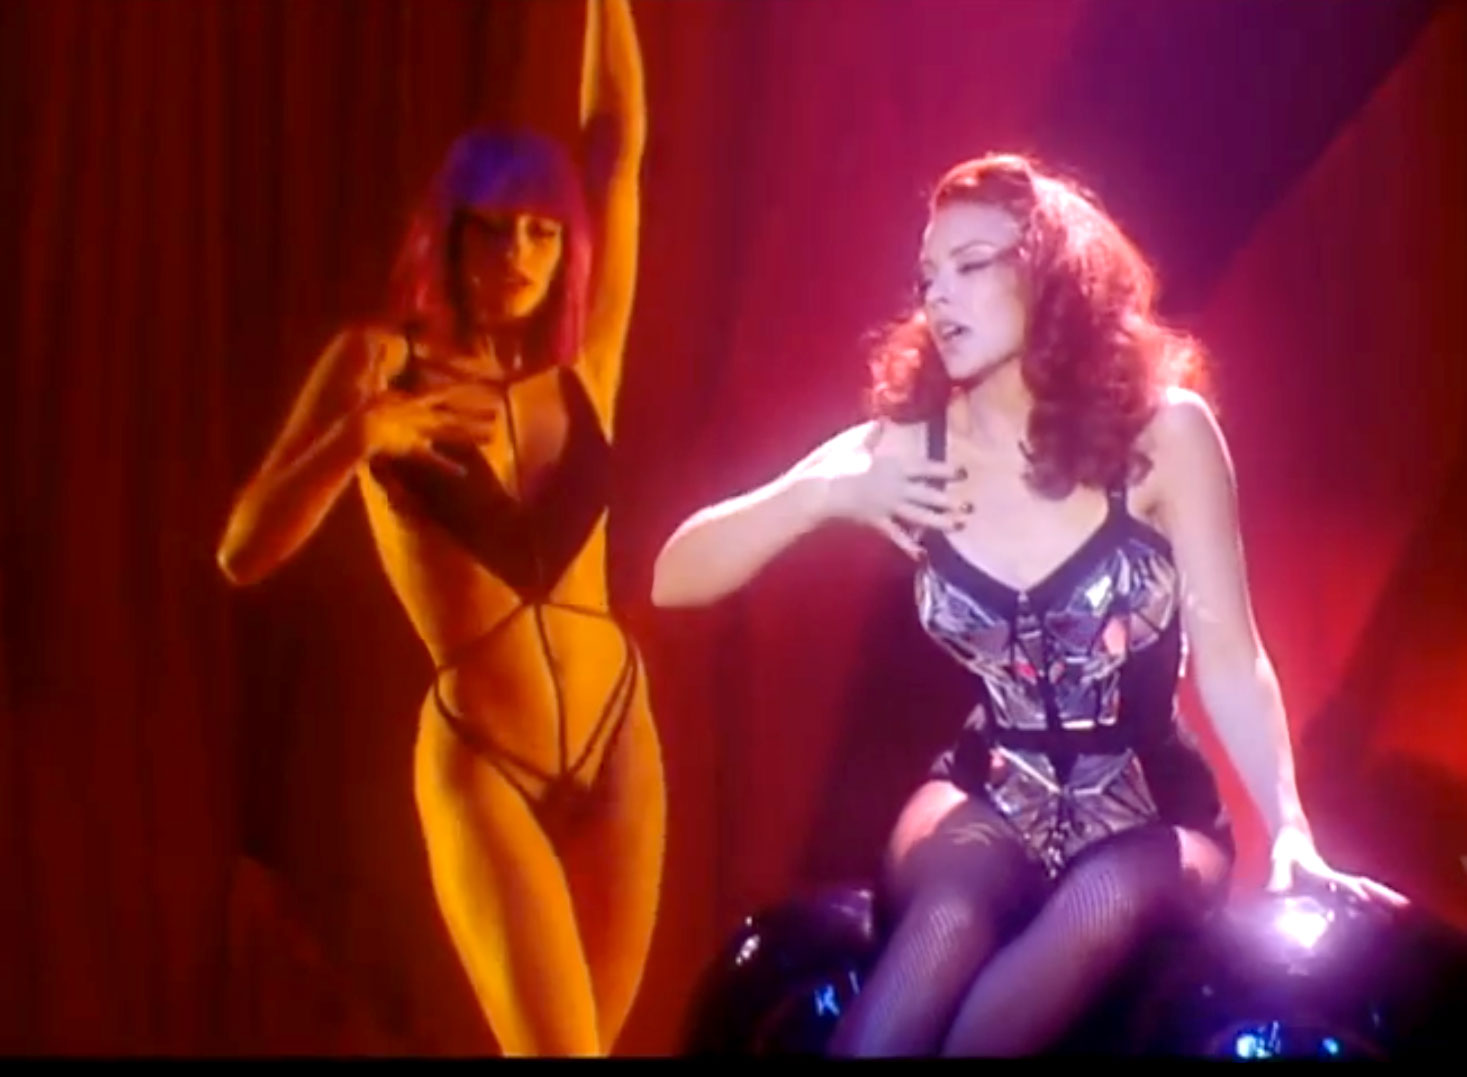 Kylie Minogue and Crazy Horse girls